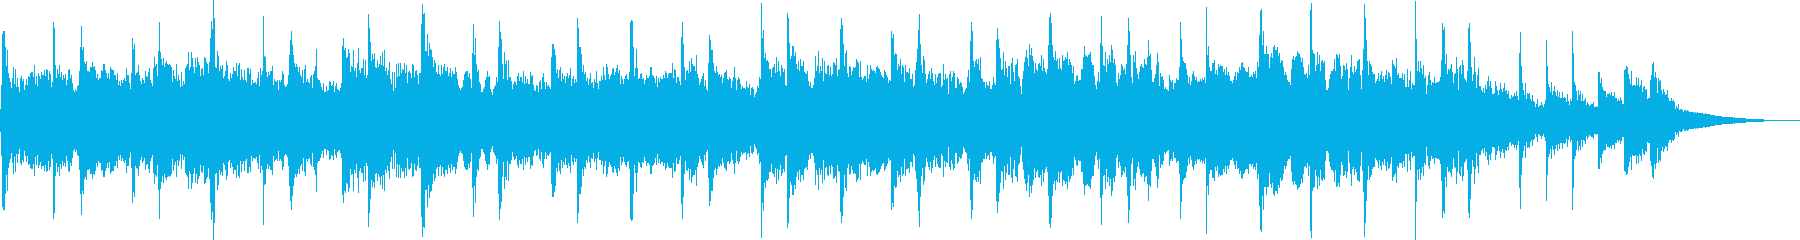 A sad and heartbreaking pop jingle's reproduced waveform